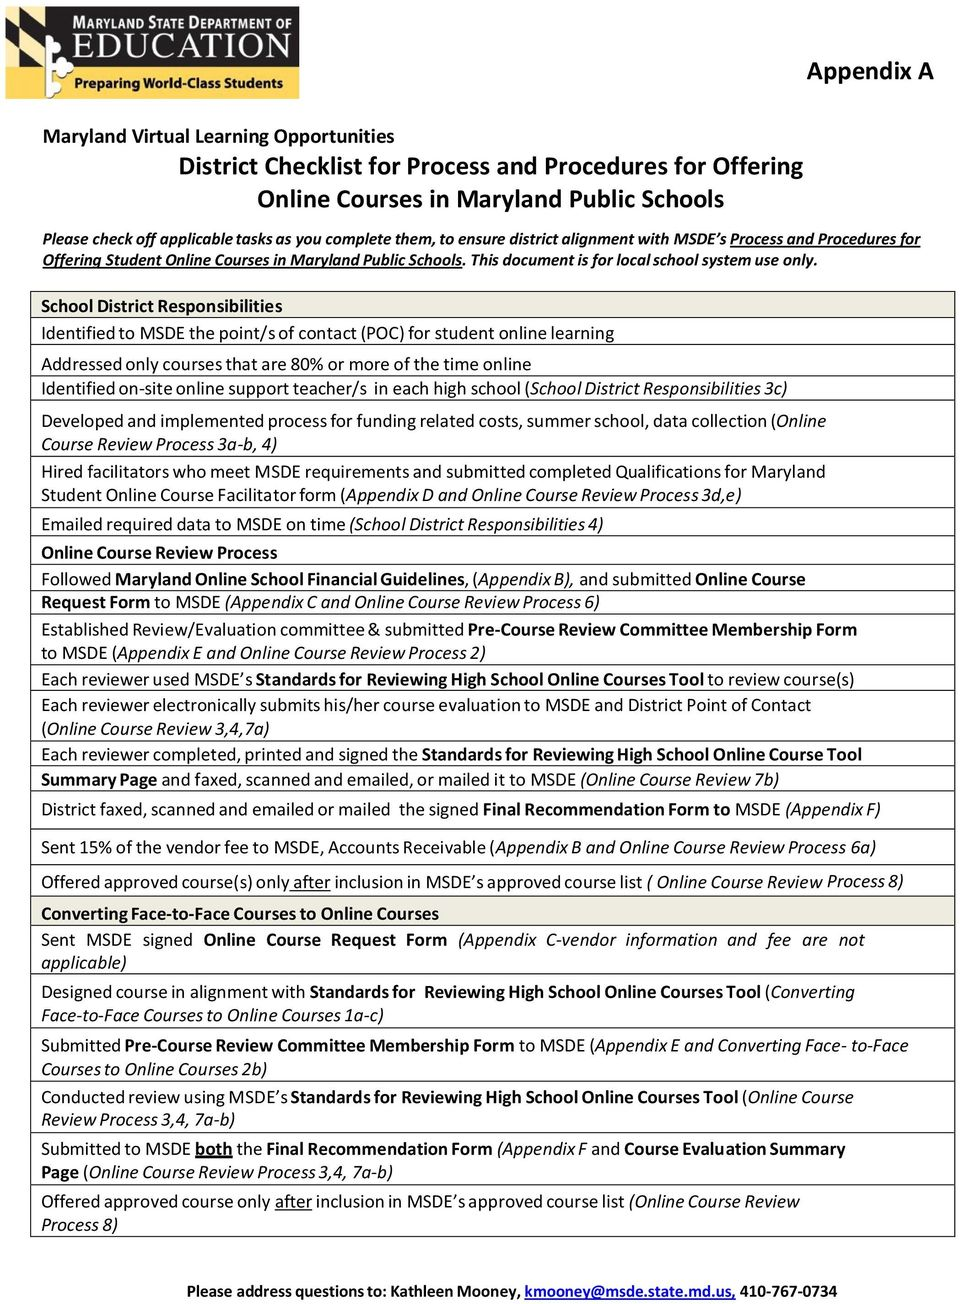 School District Responsibilities Identified to MSDE the point/s of contact (POC) for student online learning Addressed only courses that are 80% or more of the time online Identified on-site online